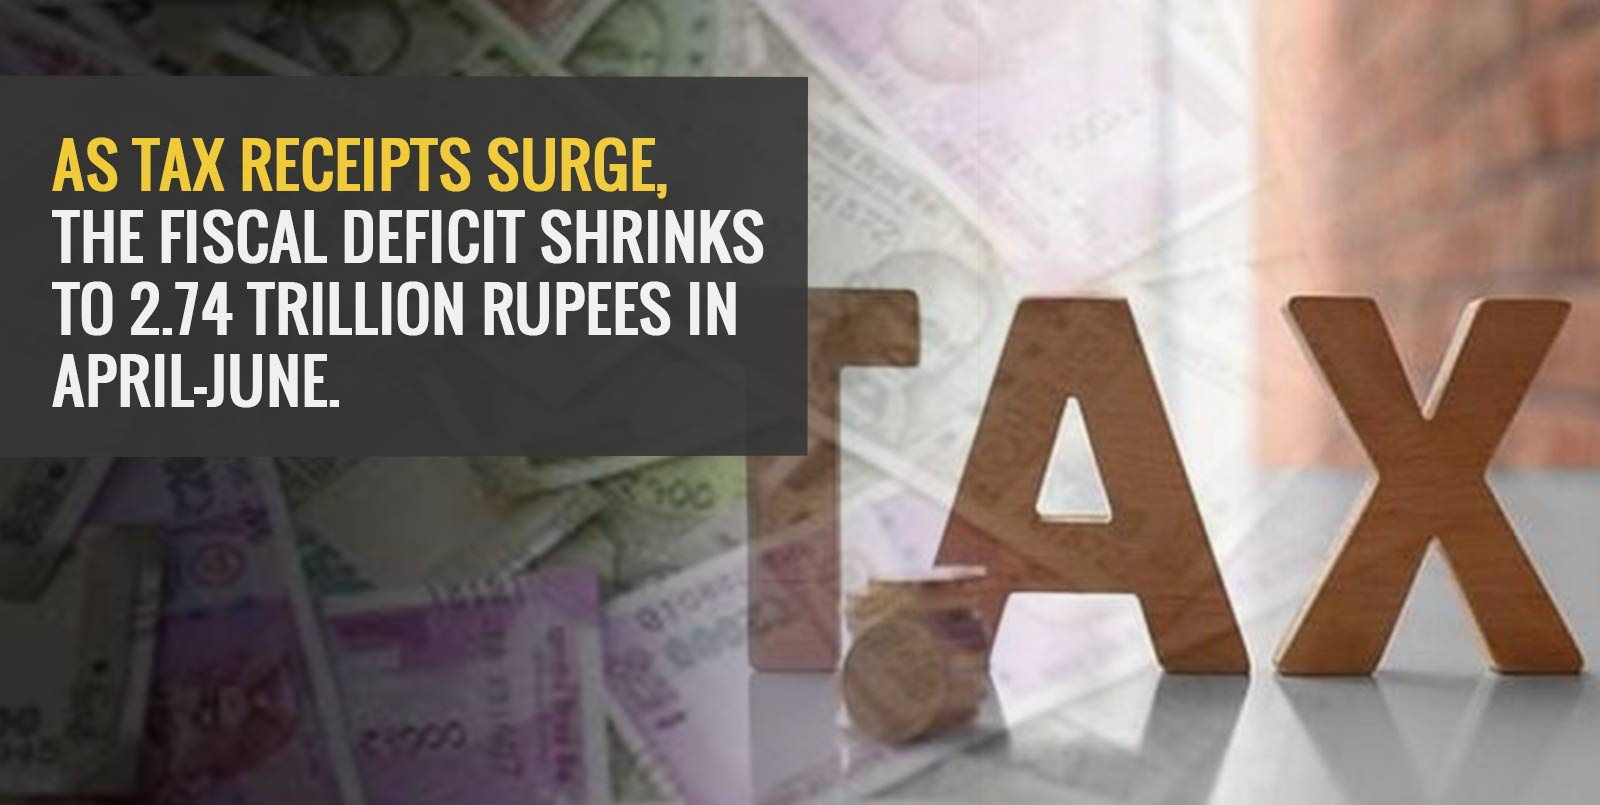 As tax receipts surge, the fiscal deficit shrinks to 2.74 trillion rupees in April-June